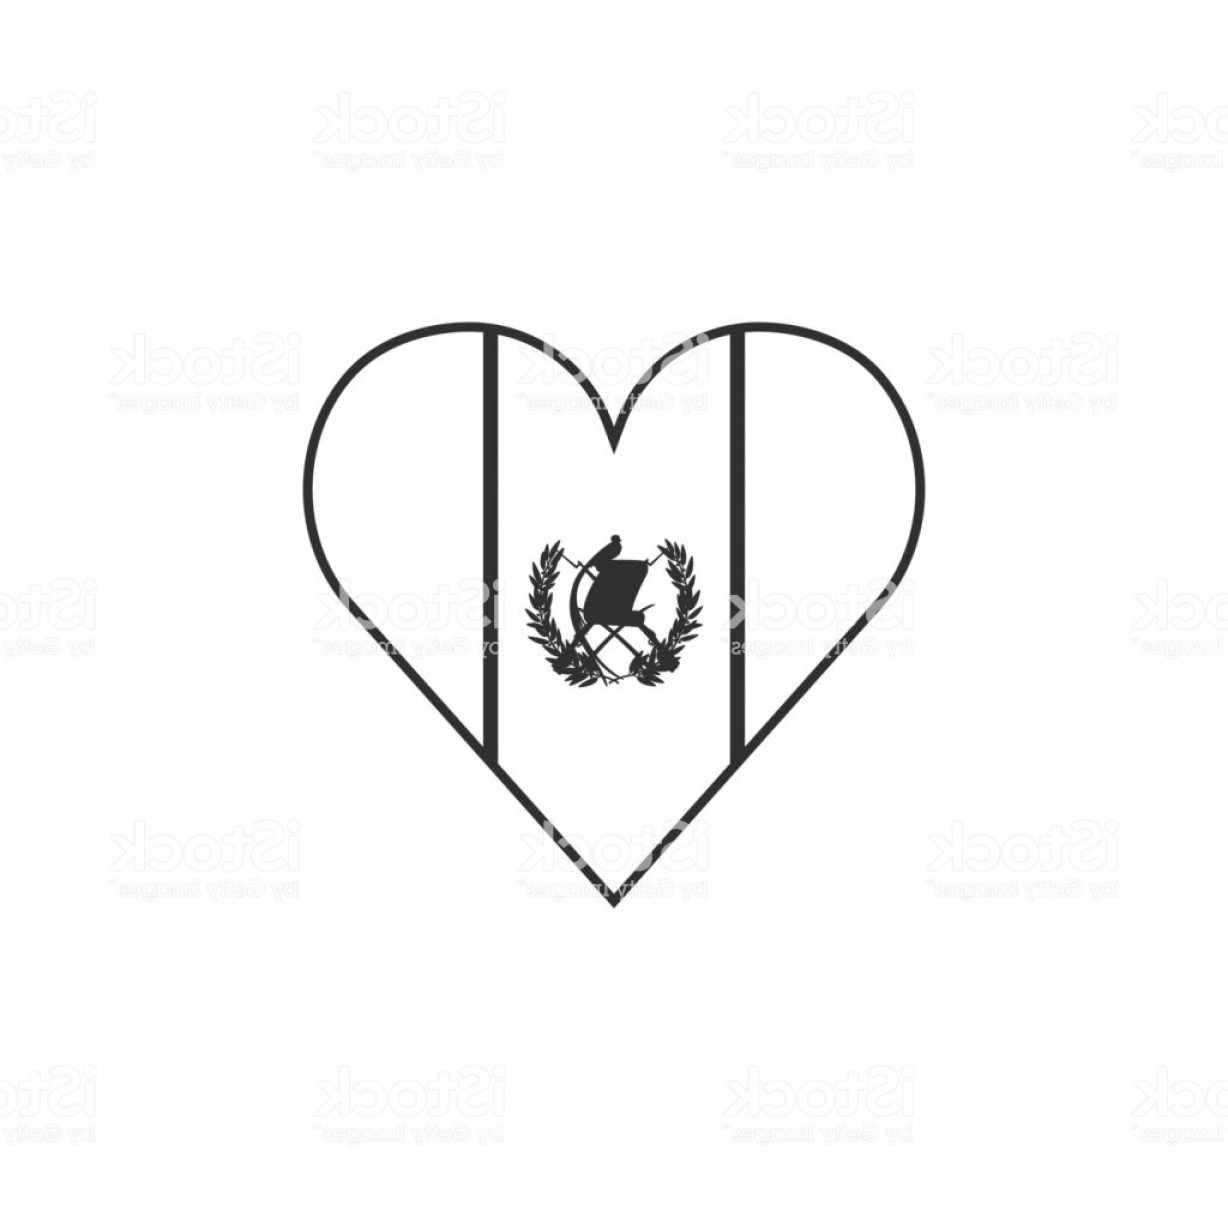 Slanted Heart Vector: Guatemala Flag Icon In A Heart Shape In Black Outline Flat Design Gm